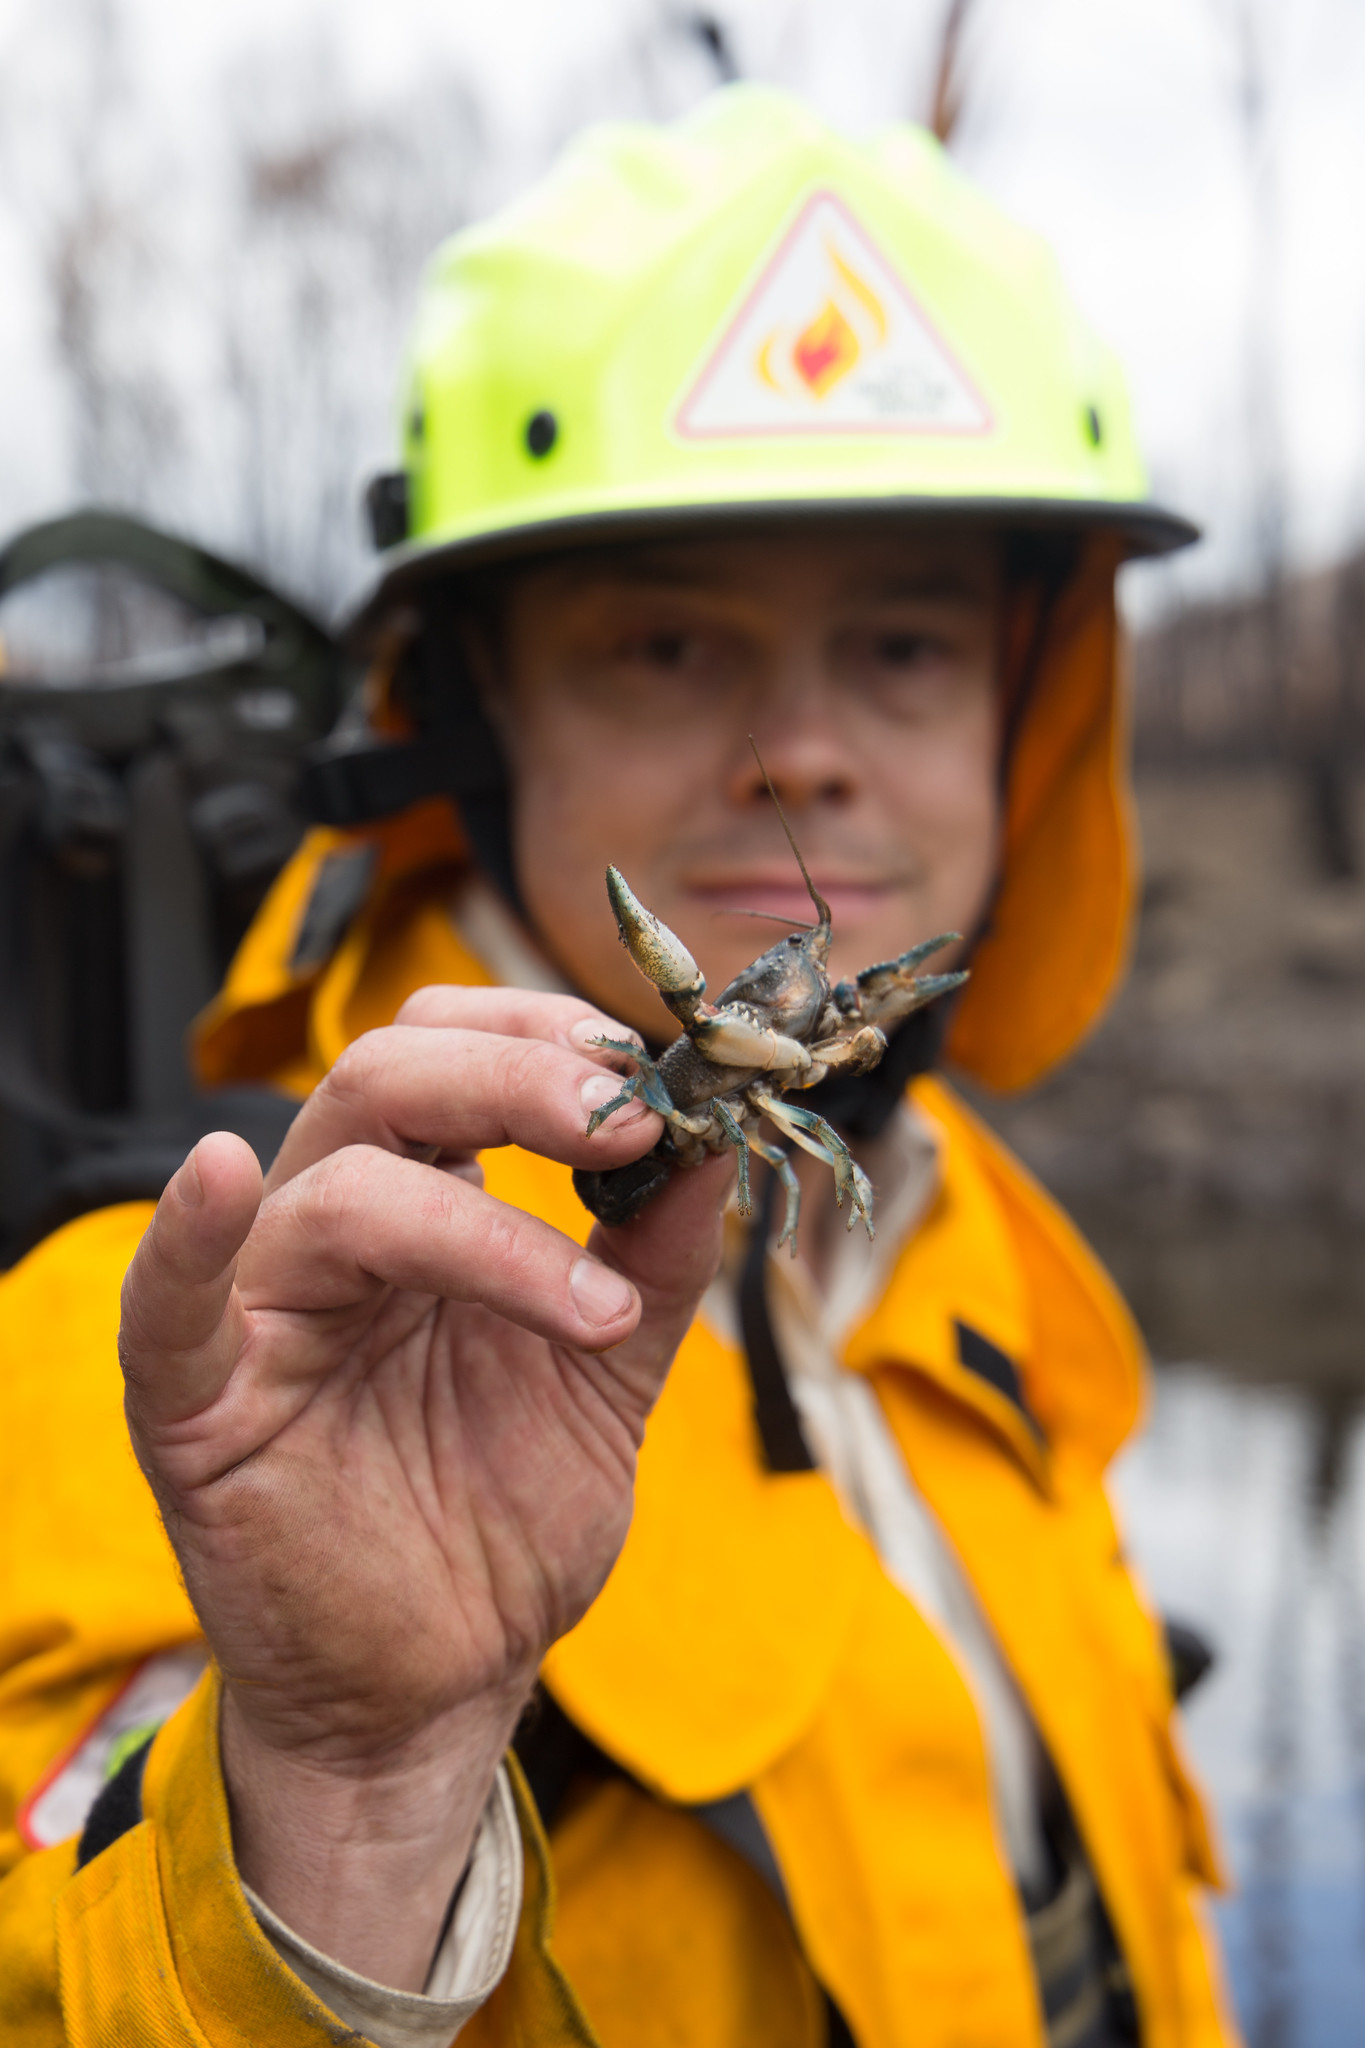 Fireman holding insect